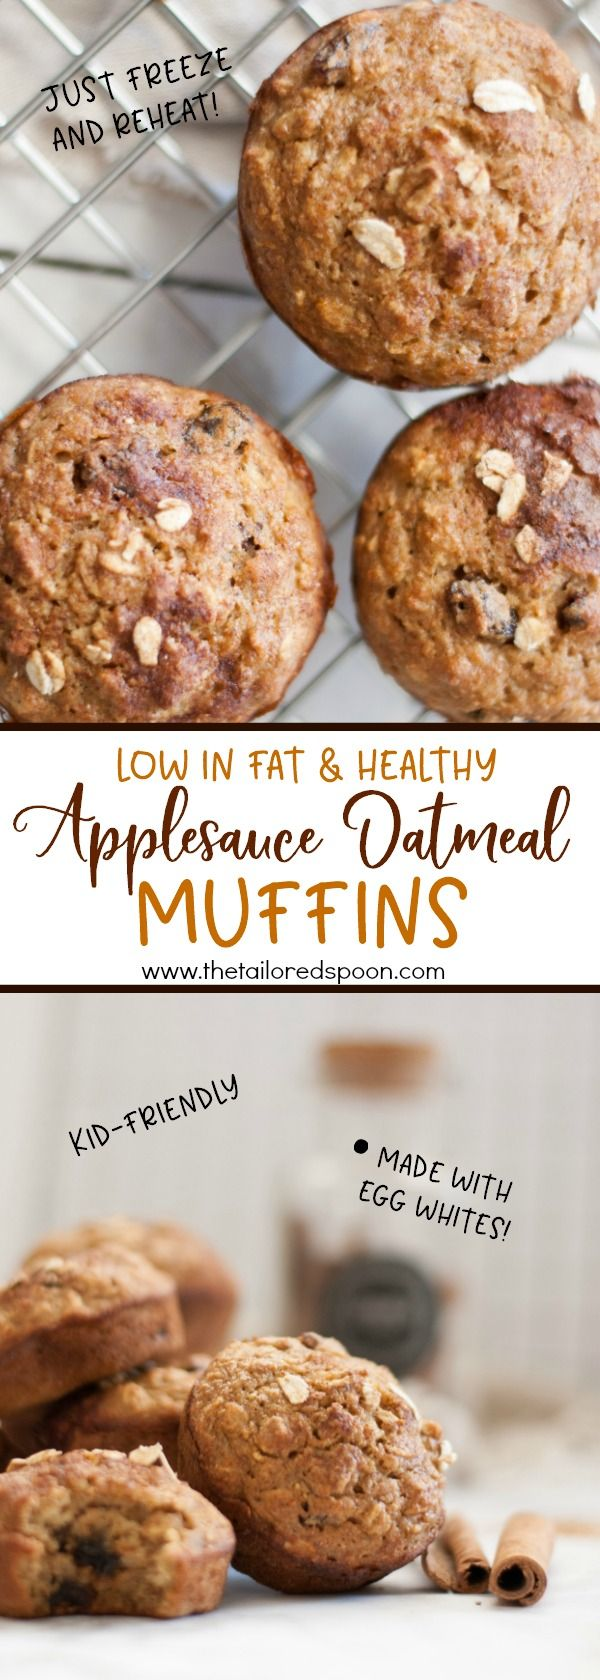 Applesauce Oatmeal Muffins, healthy and low in fat. Perfect for an on-the-go morning breakfast! #muffins #healthy #lowfat #oatmeal #applesauce